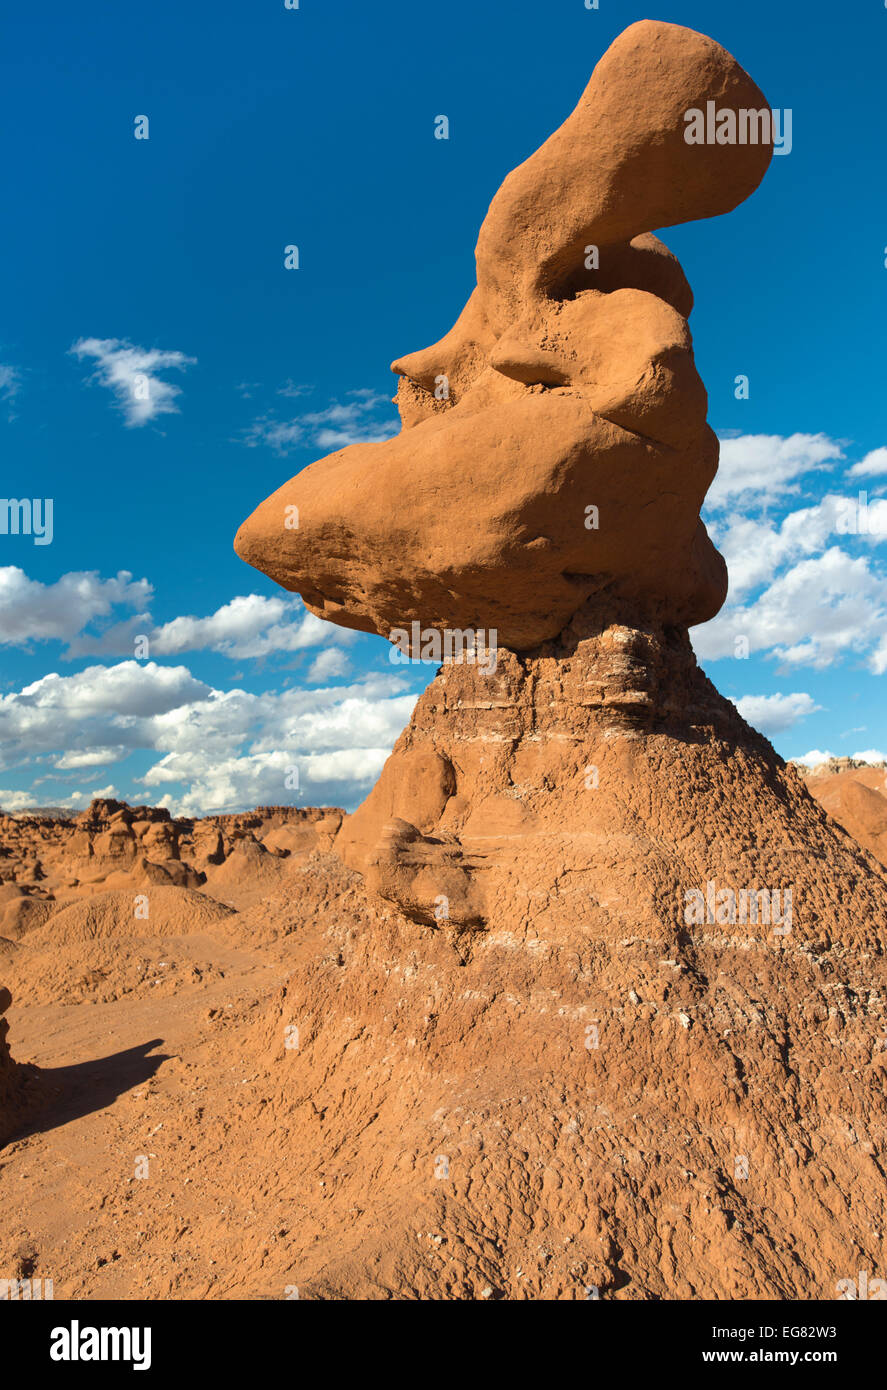 One of the curious formations at Goblin Valley State Park, Utah - Stock Image